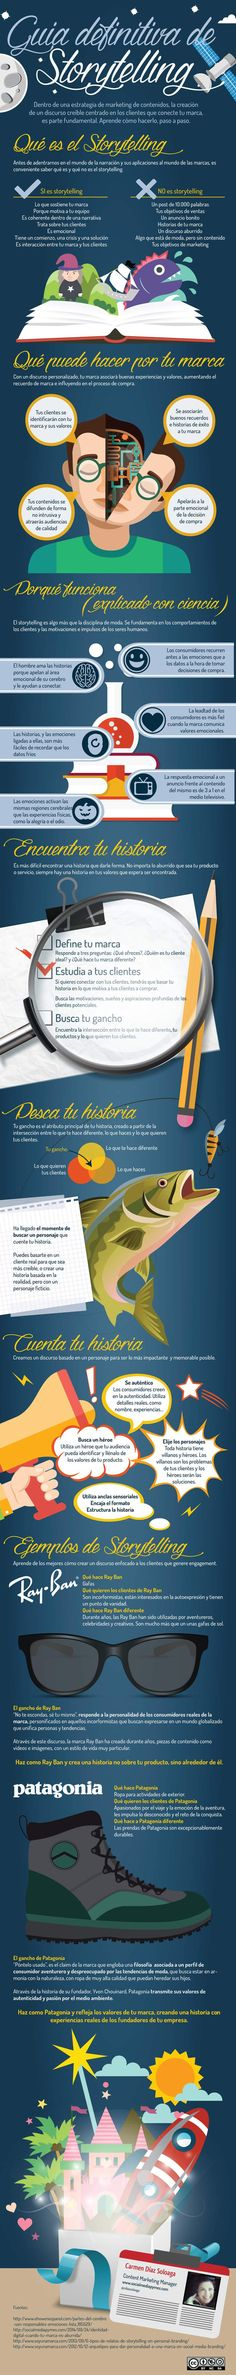 Guía definitiva del #Storytelling #marketing #infografia